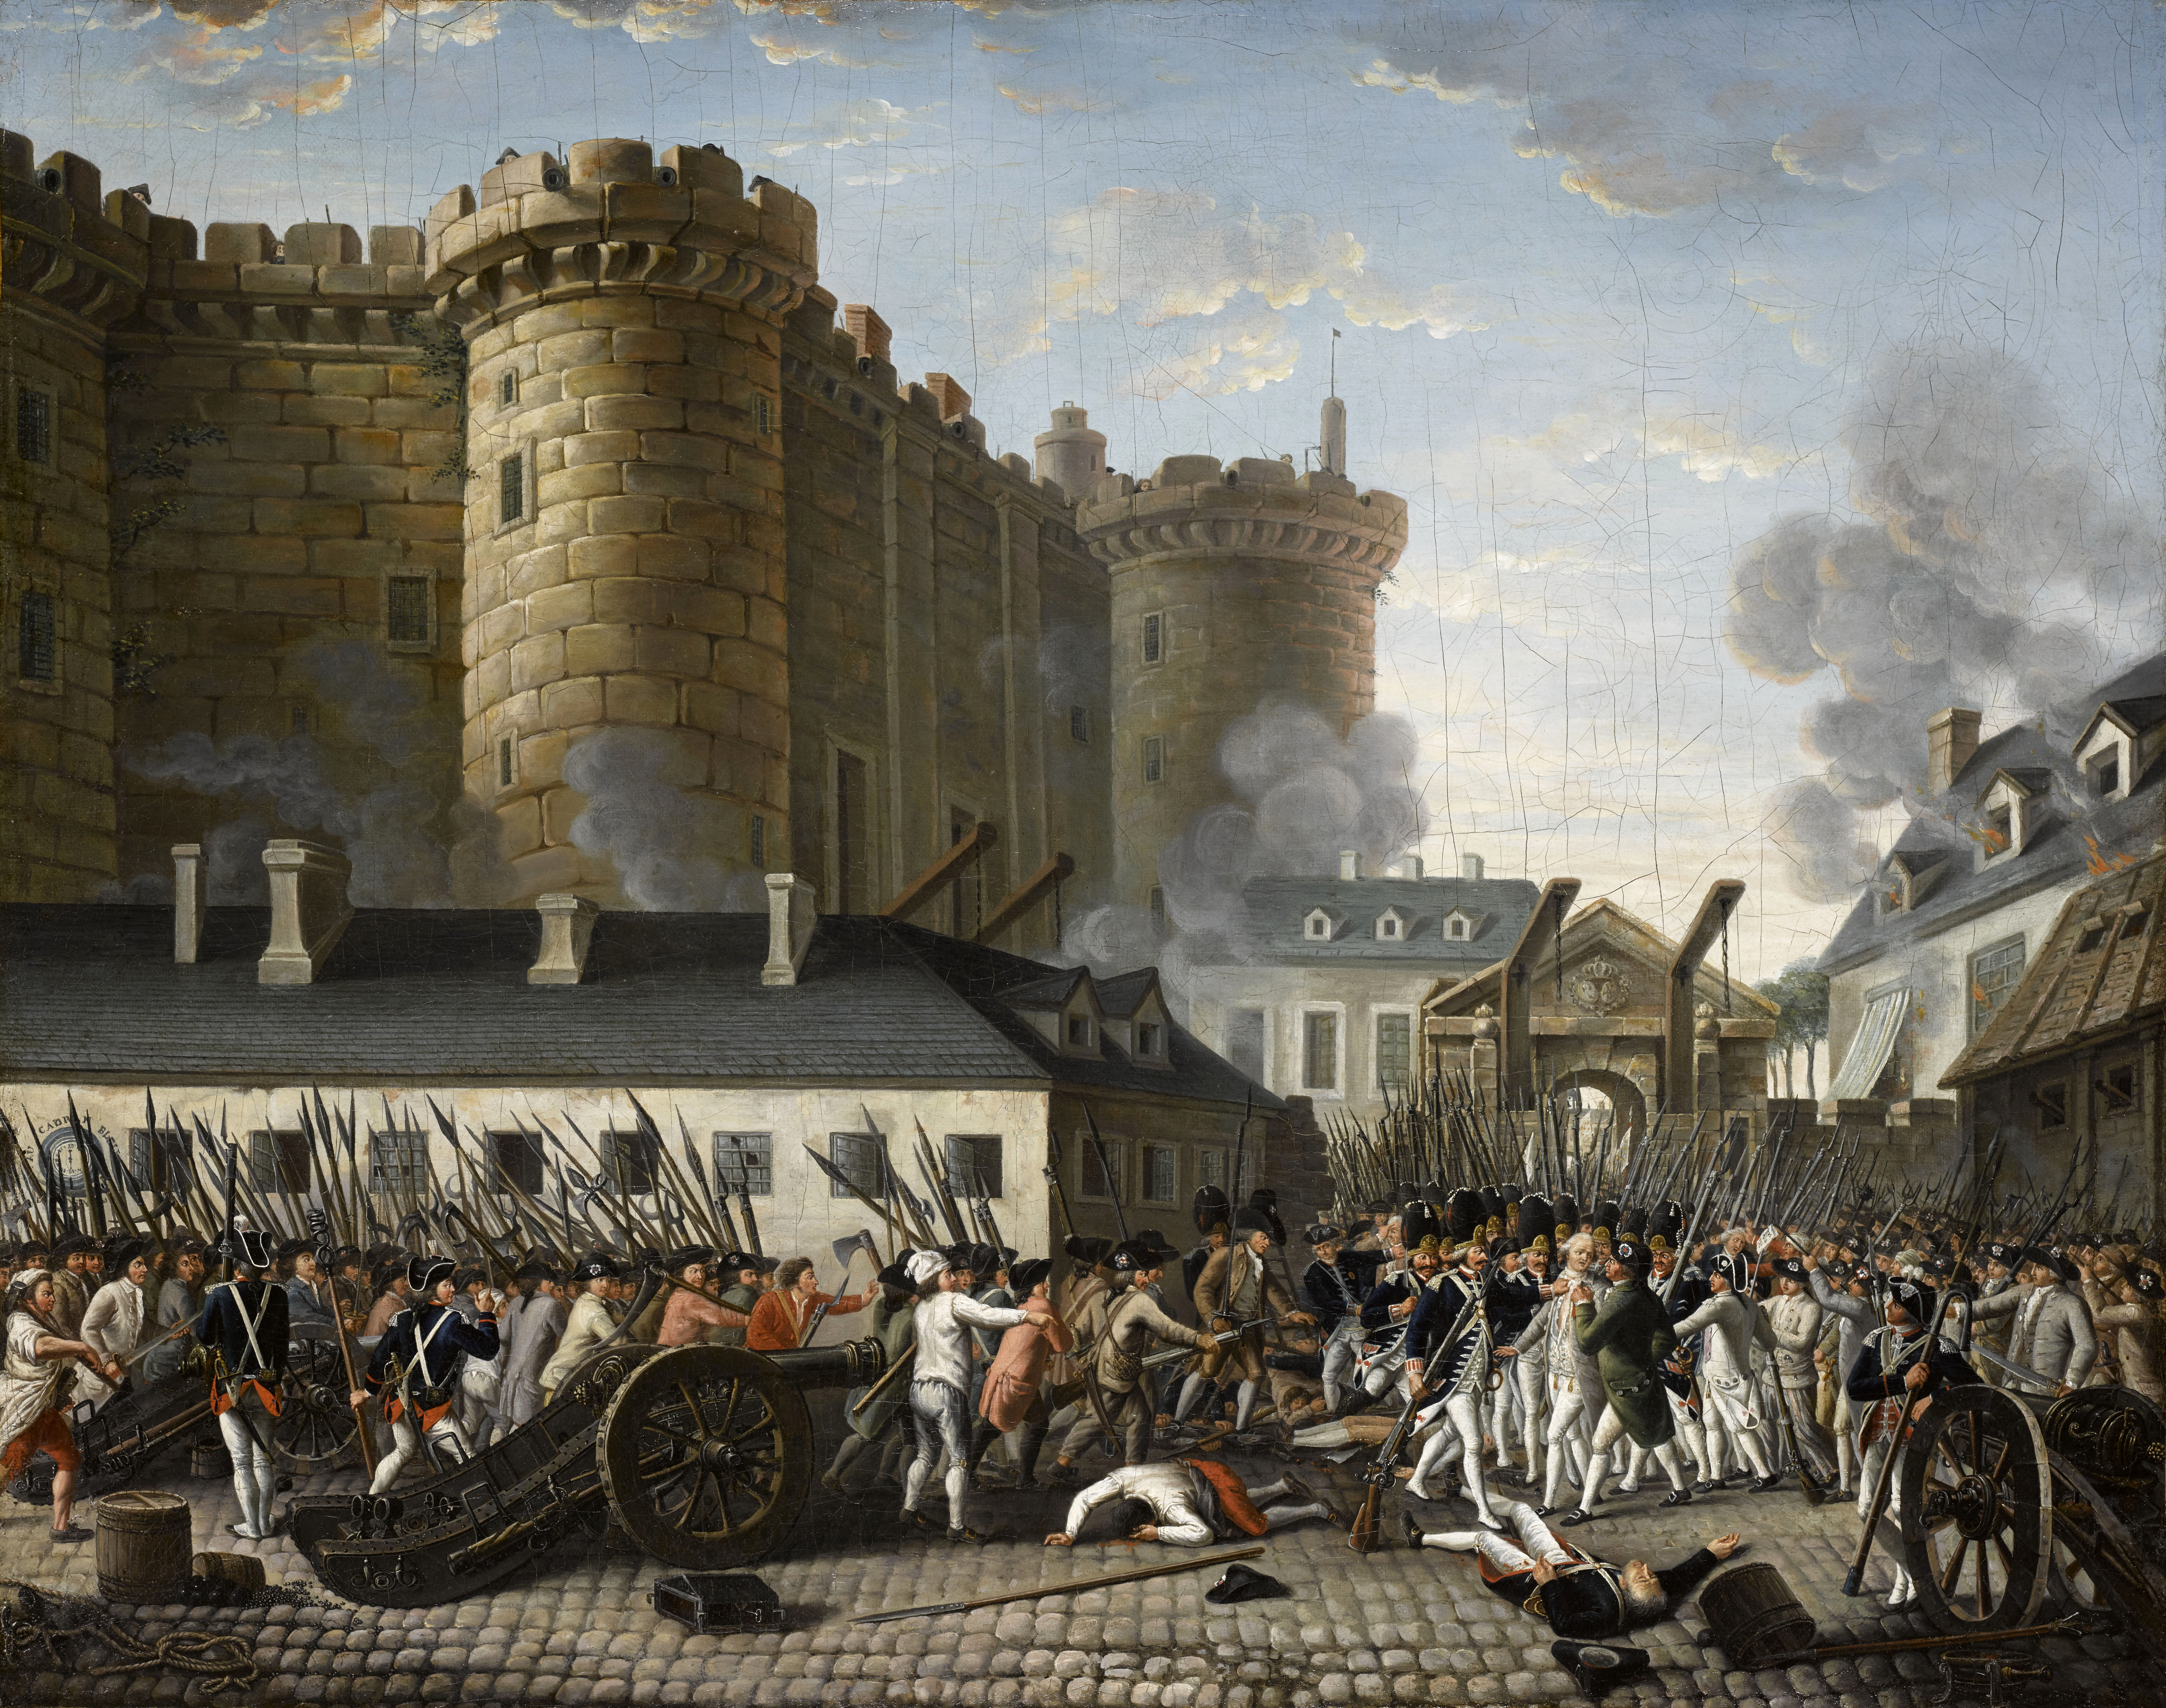 French Revolution, the Catholic Church and the fall of the Papacy.